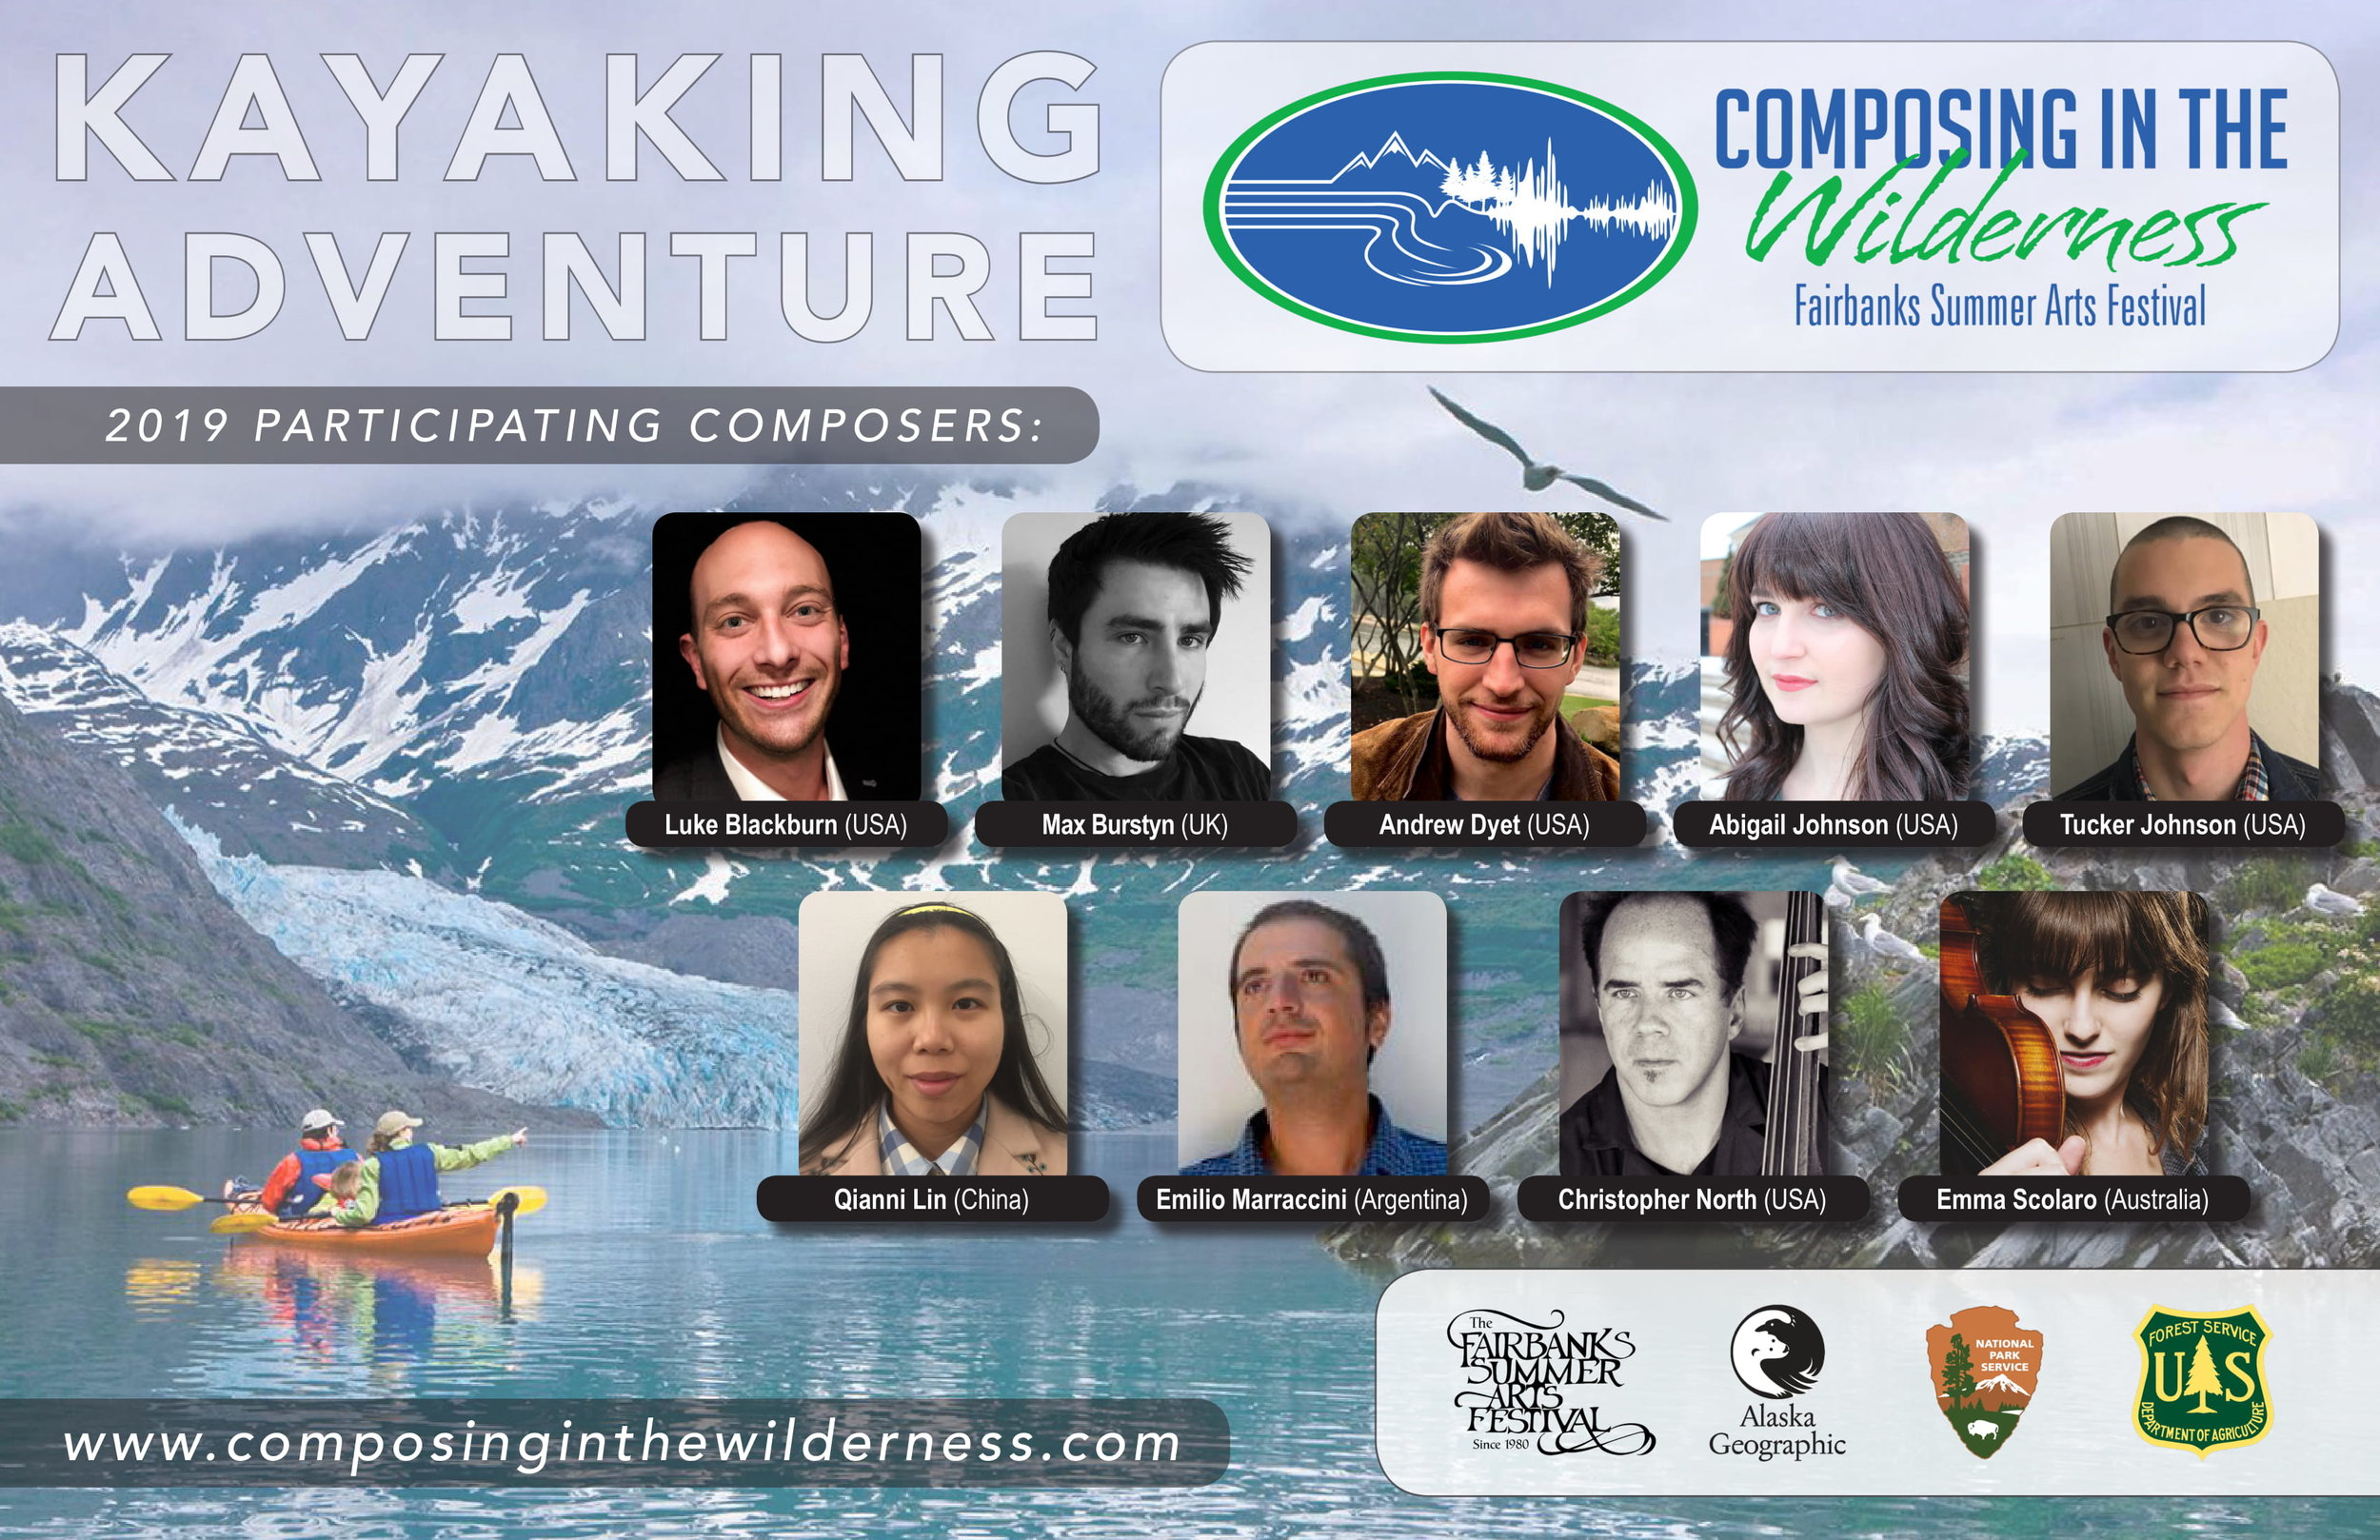 Composing in the Wilderness: Kayaking Adventure - I am honored to have been chosen for the 2019 Fairbanks Summer Arts Festival's Composing in the Wilderness trip. Led by adventurer-composer Nathan Lincoln-DeCusatis and designed for experienced acoustic or electroacoustic composers who want a more immersive backcountry experience, this field course will take nine participants on a week-long sea kayaking trip in spectacular Prince William Sound. Upon returning, the participants will have a couple of months to complete their pieces before the culminating concert takes place at Federal Hall National Memorial in New York City on November 22, 2019.